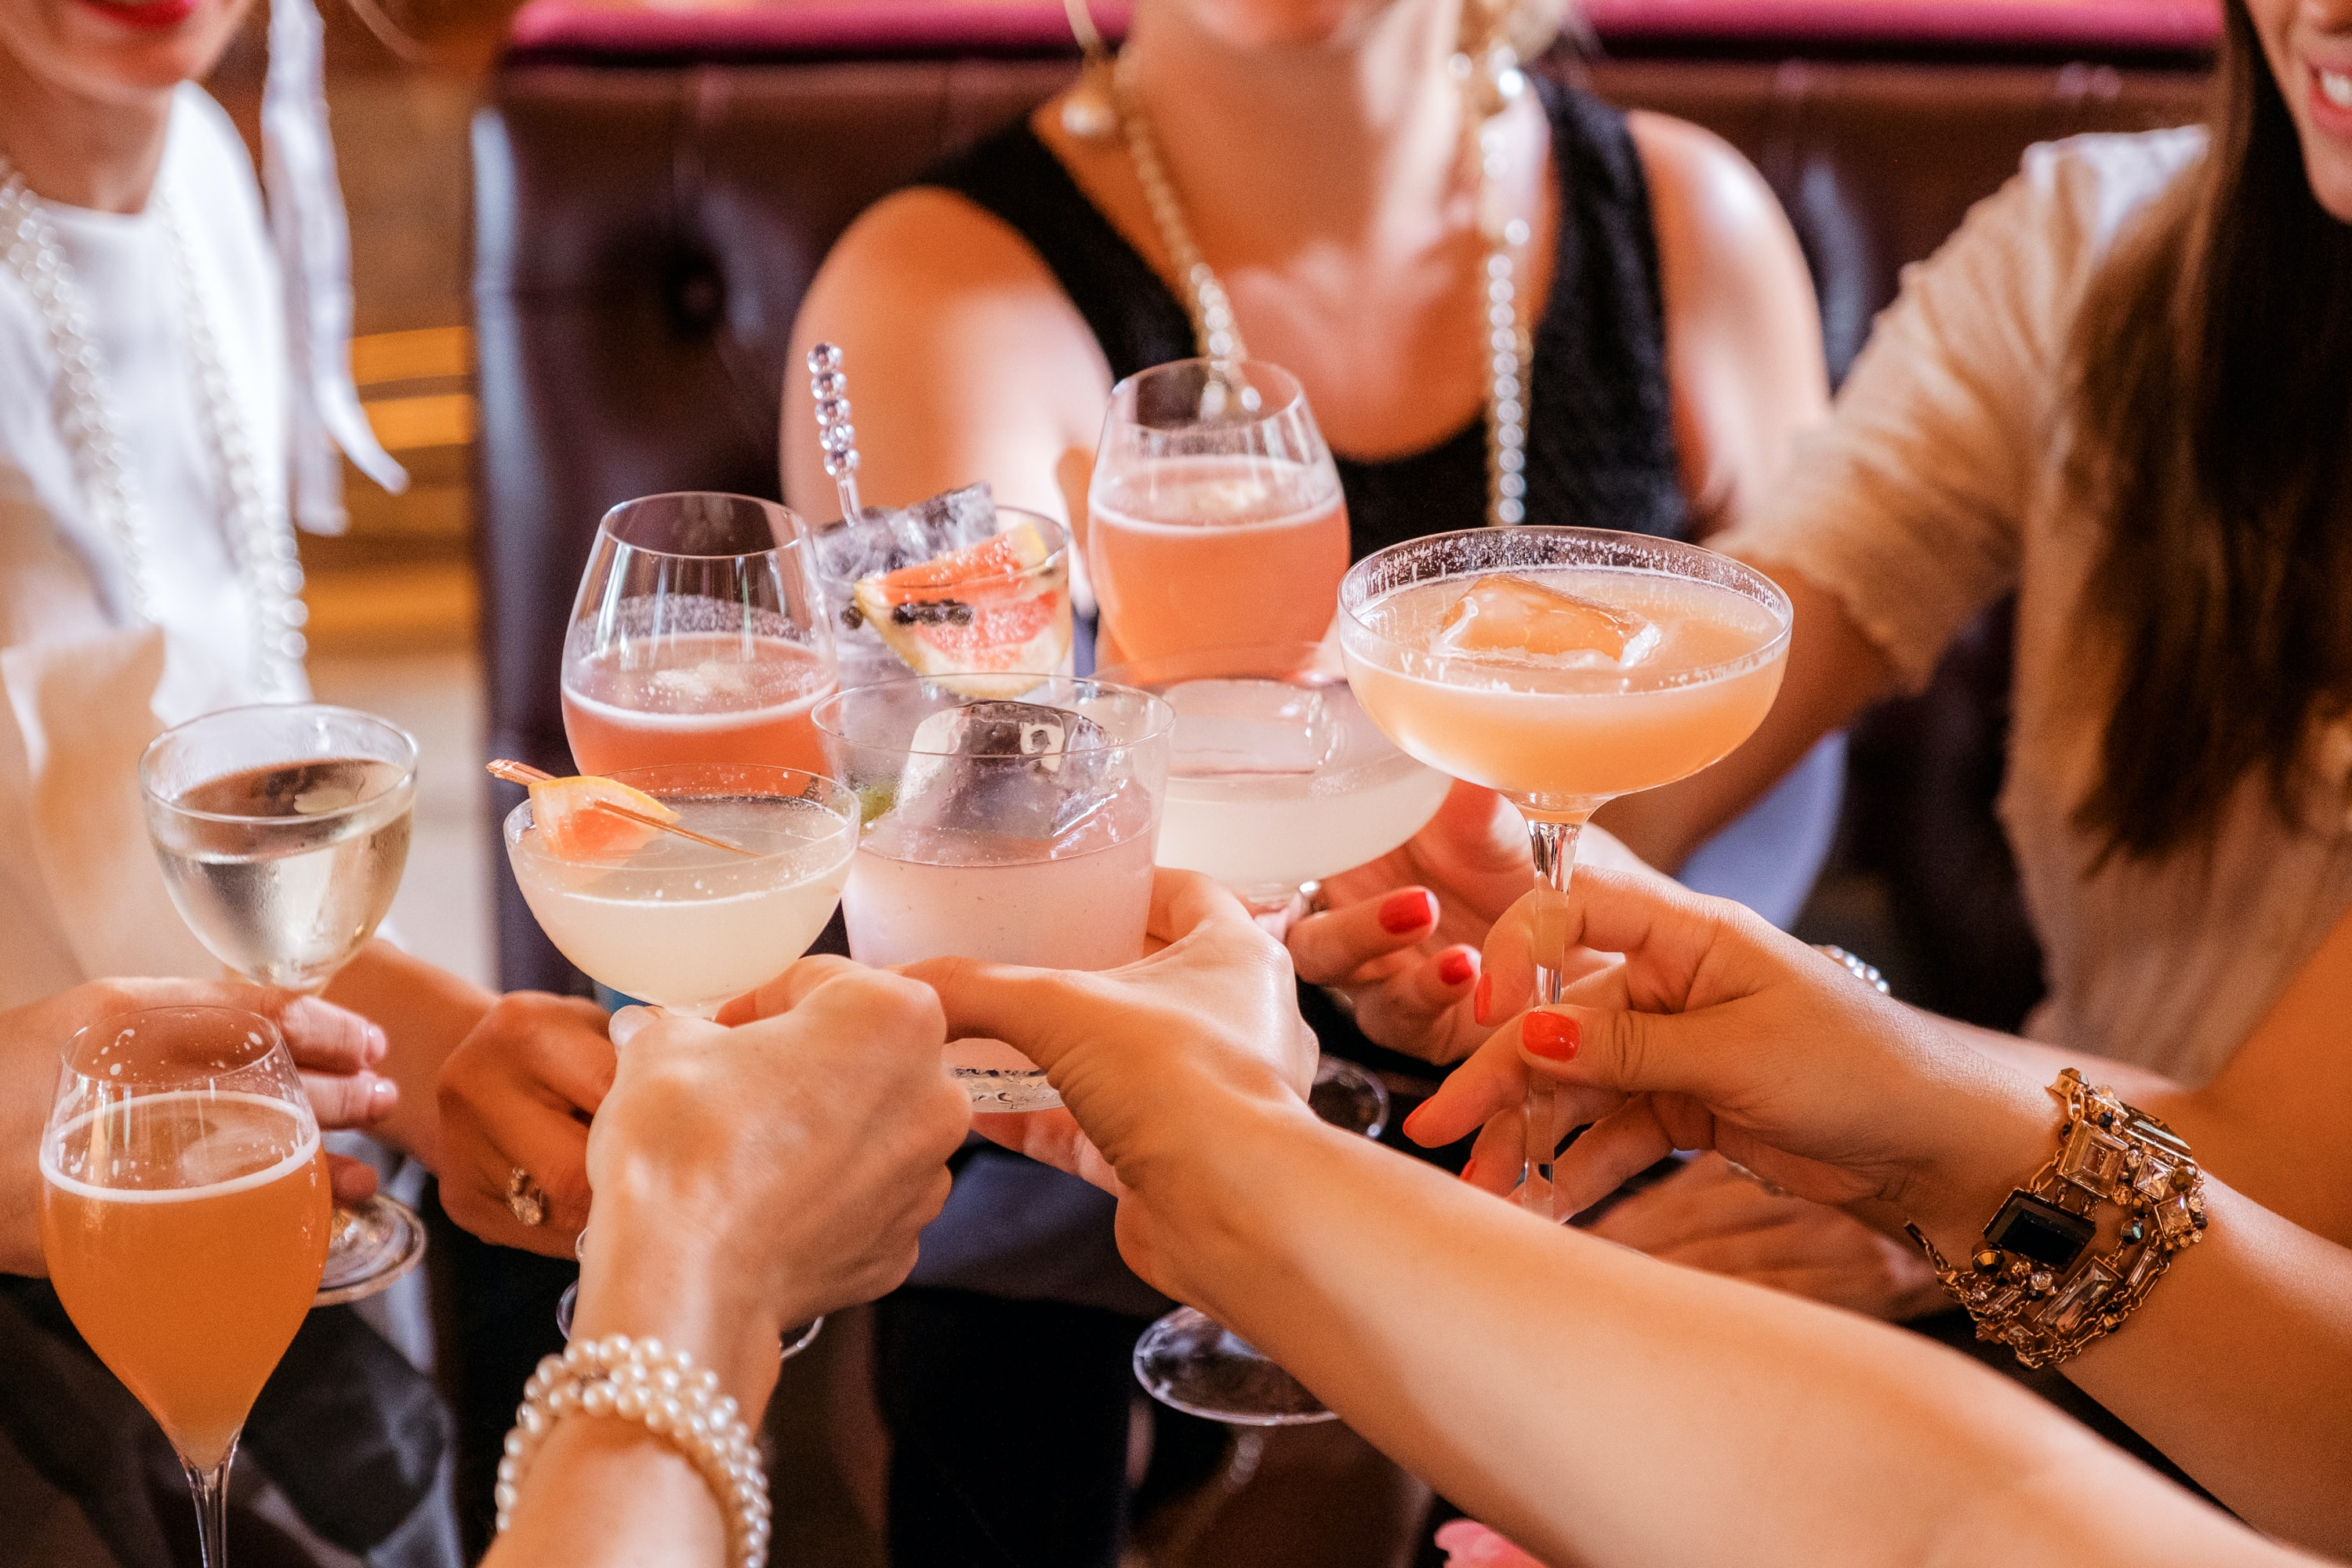 group of people with cocktails in their hands cheering